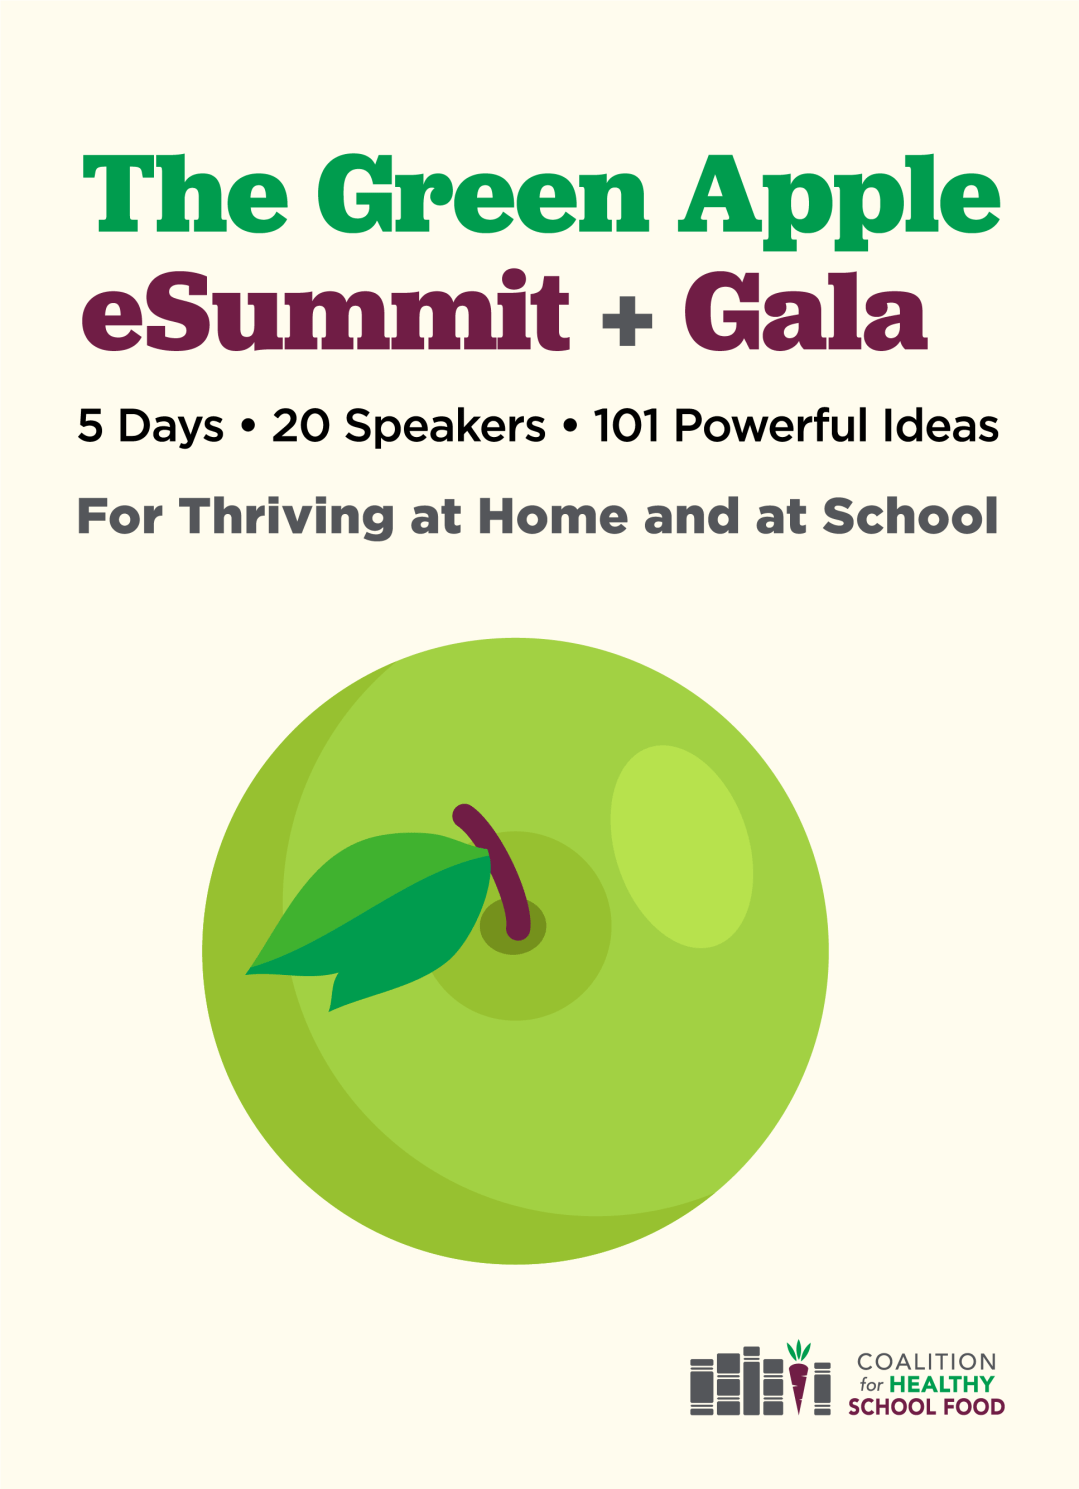 Green Apple eSummit + Gala logo